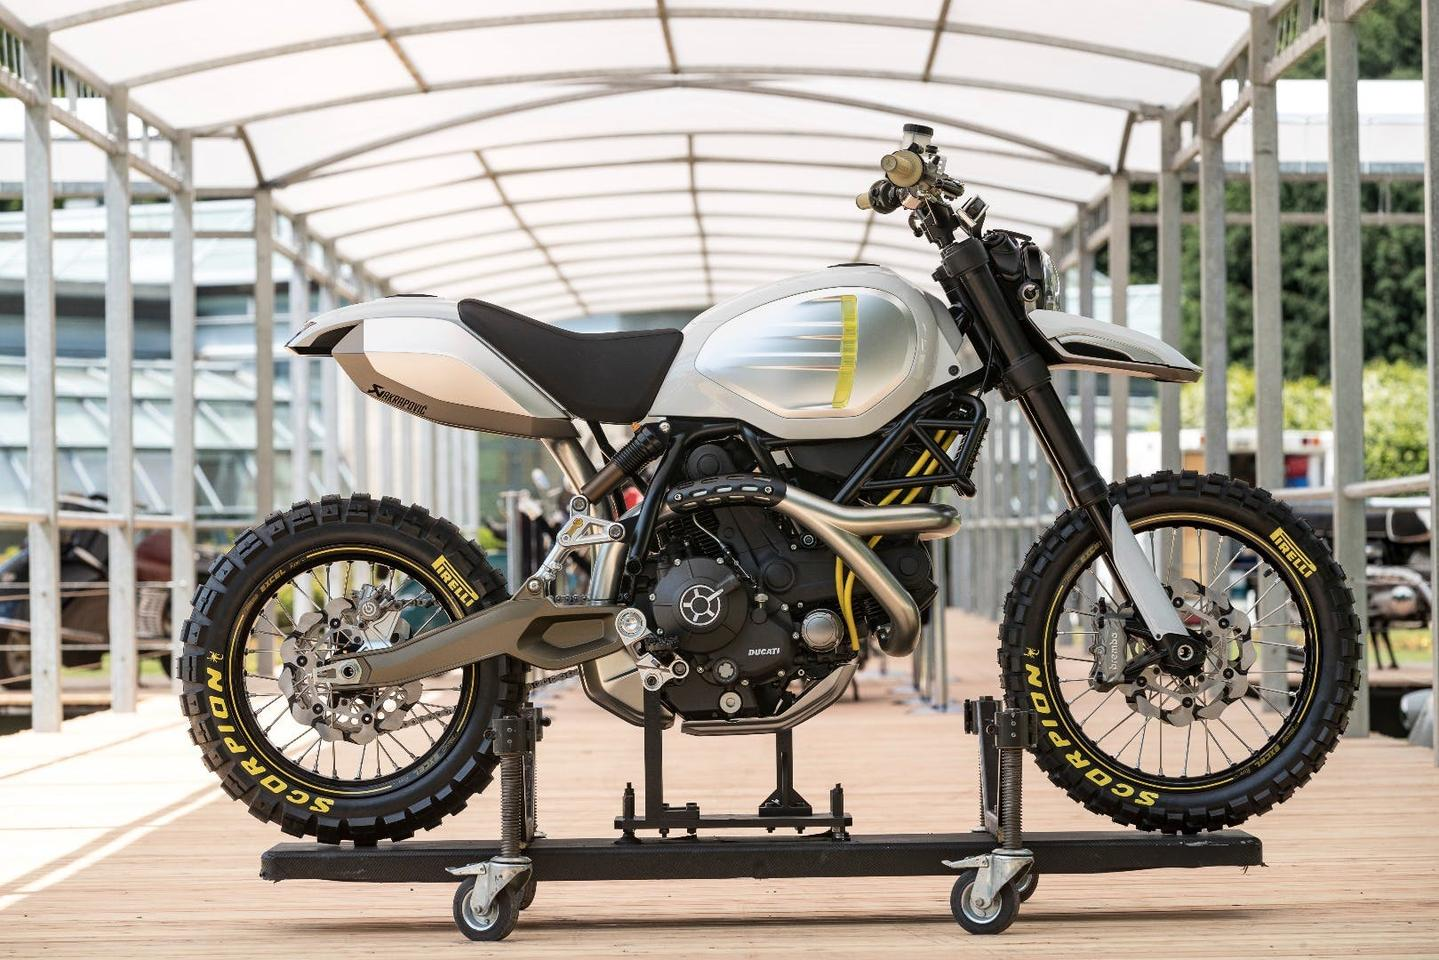 Ducati Scrambler Desert Sled custom concept: looks classy as well as fun to ride